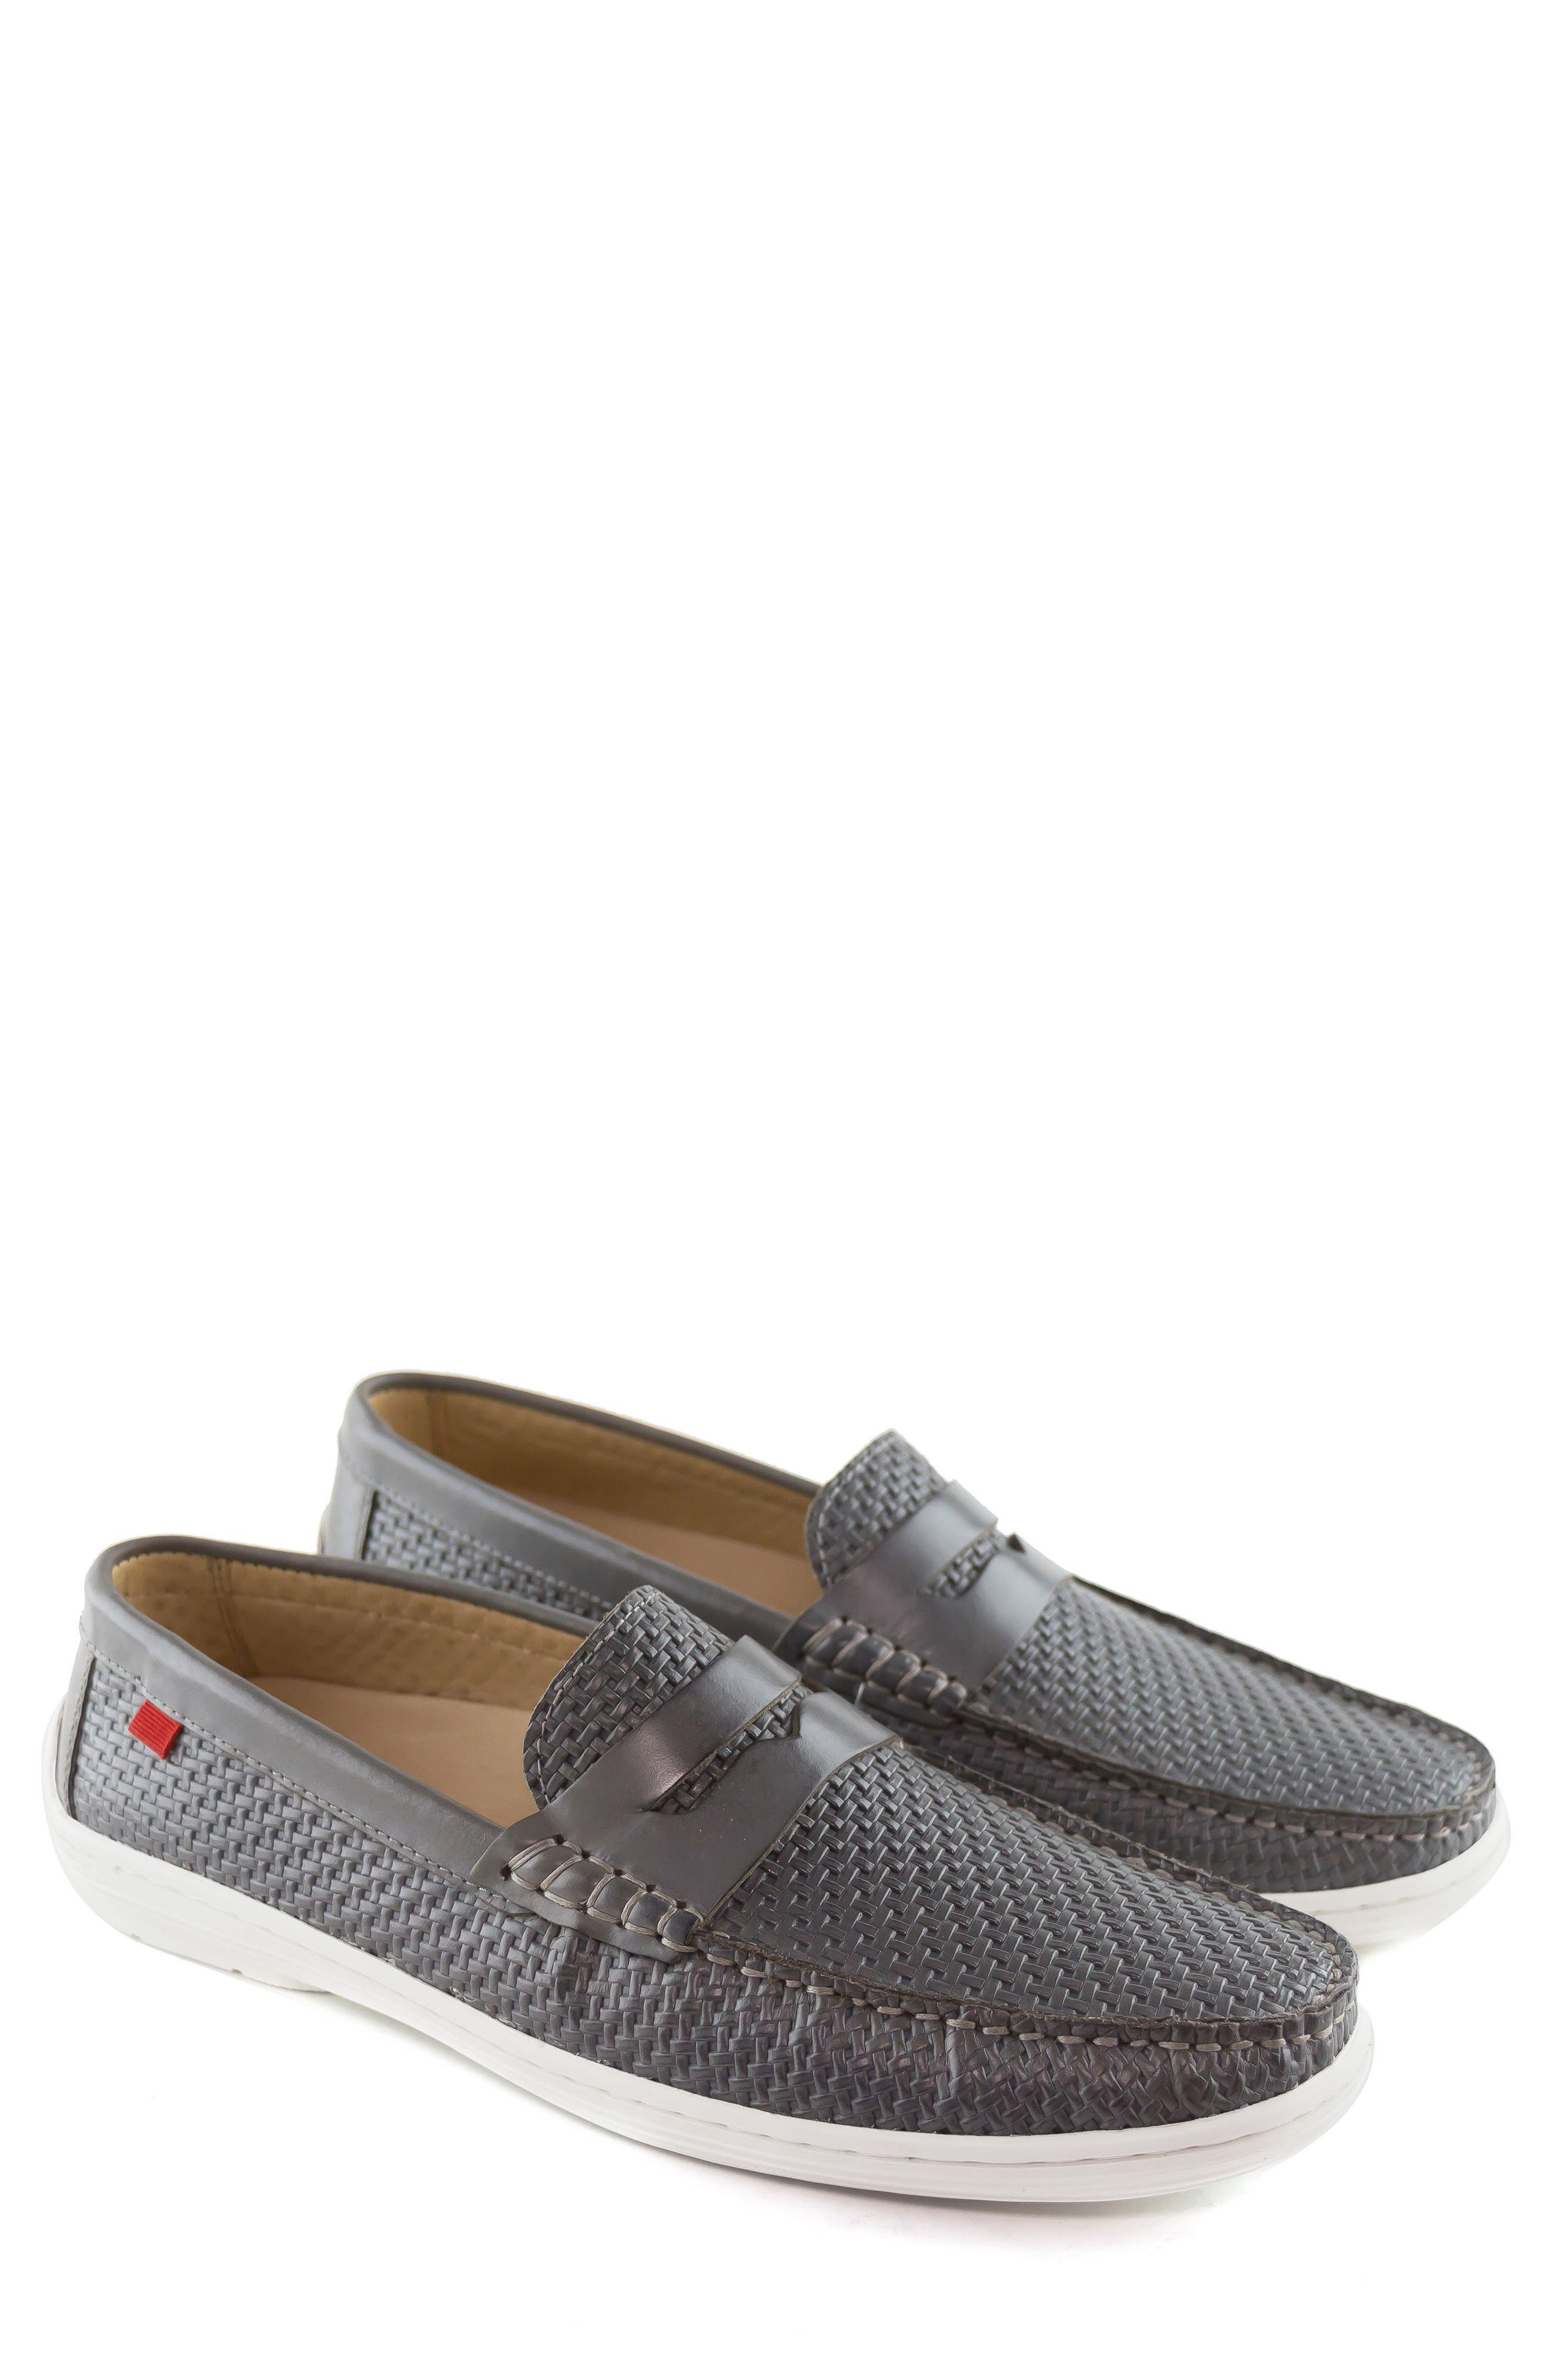 Atlantic Penny Loafer,                             Alternate thumbnail 4, color,                             Grey Leather